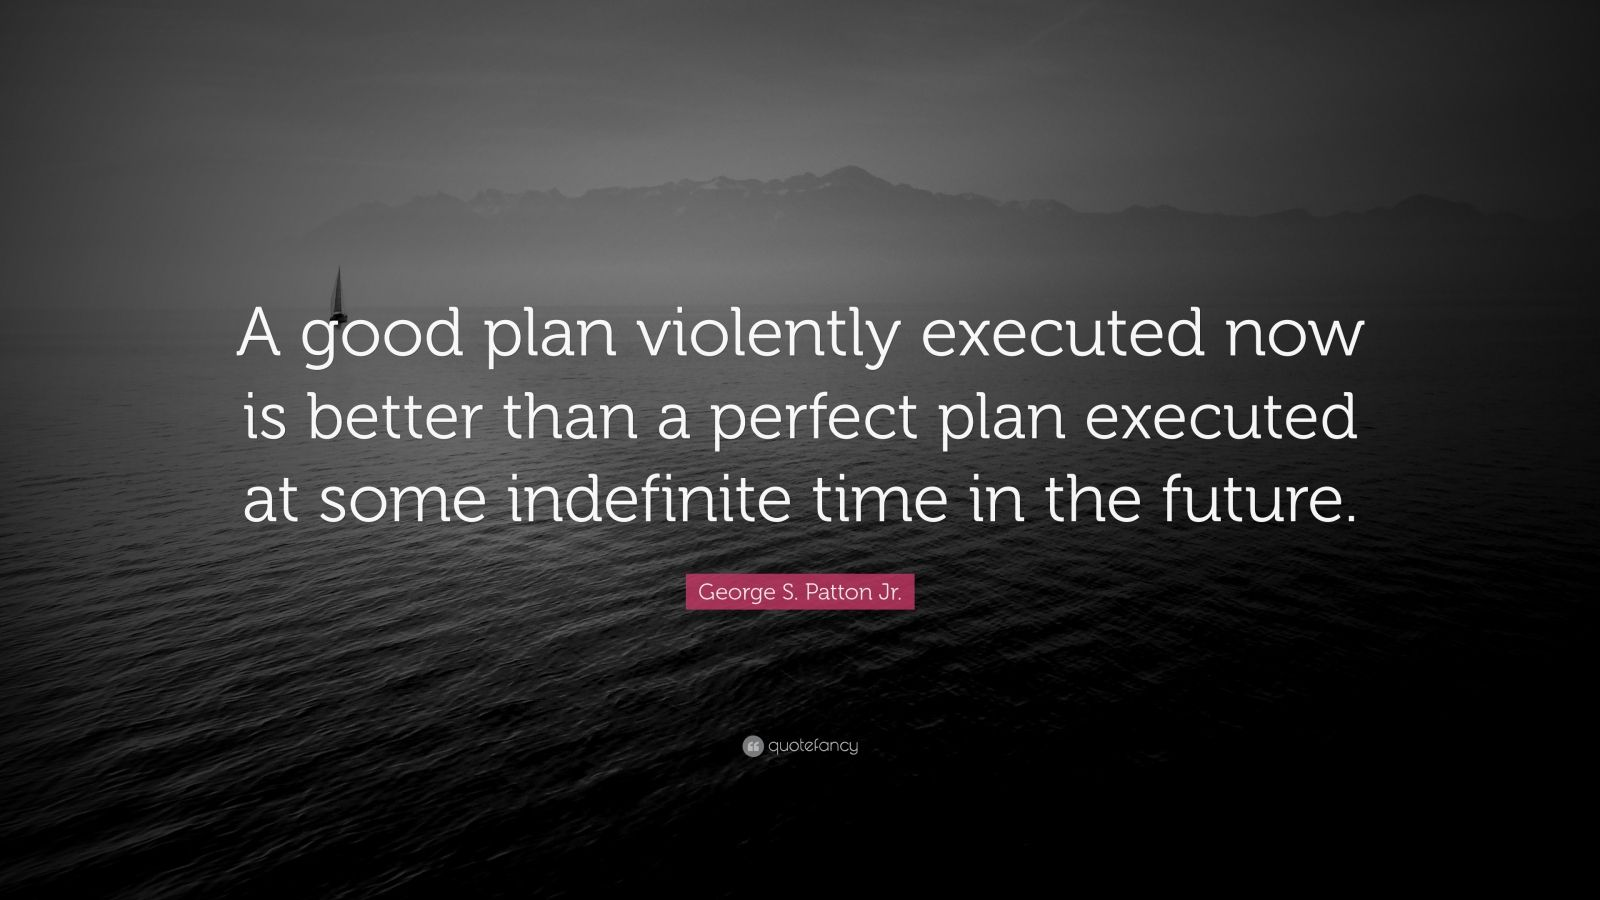 "George S. Patton Jr. Quote: ""A good plan violently executed now is better than a perfect plan executed at some indefinite time in the future."""